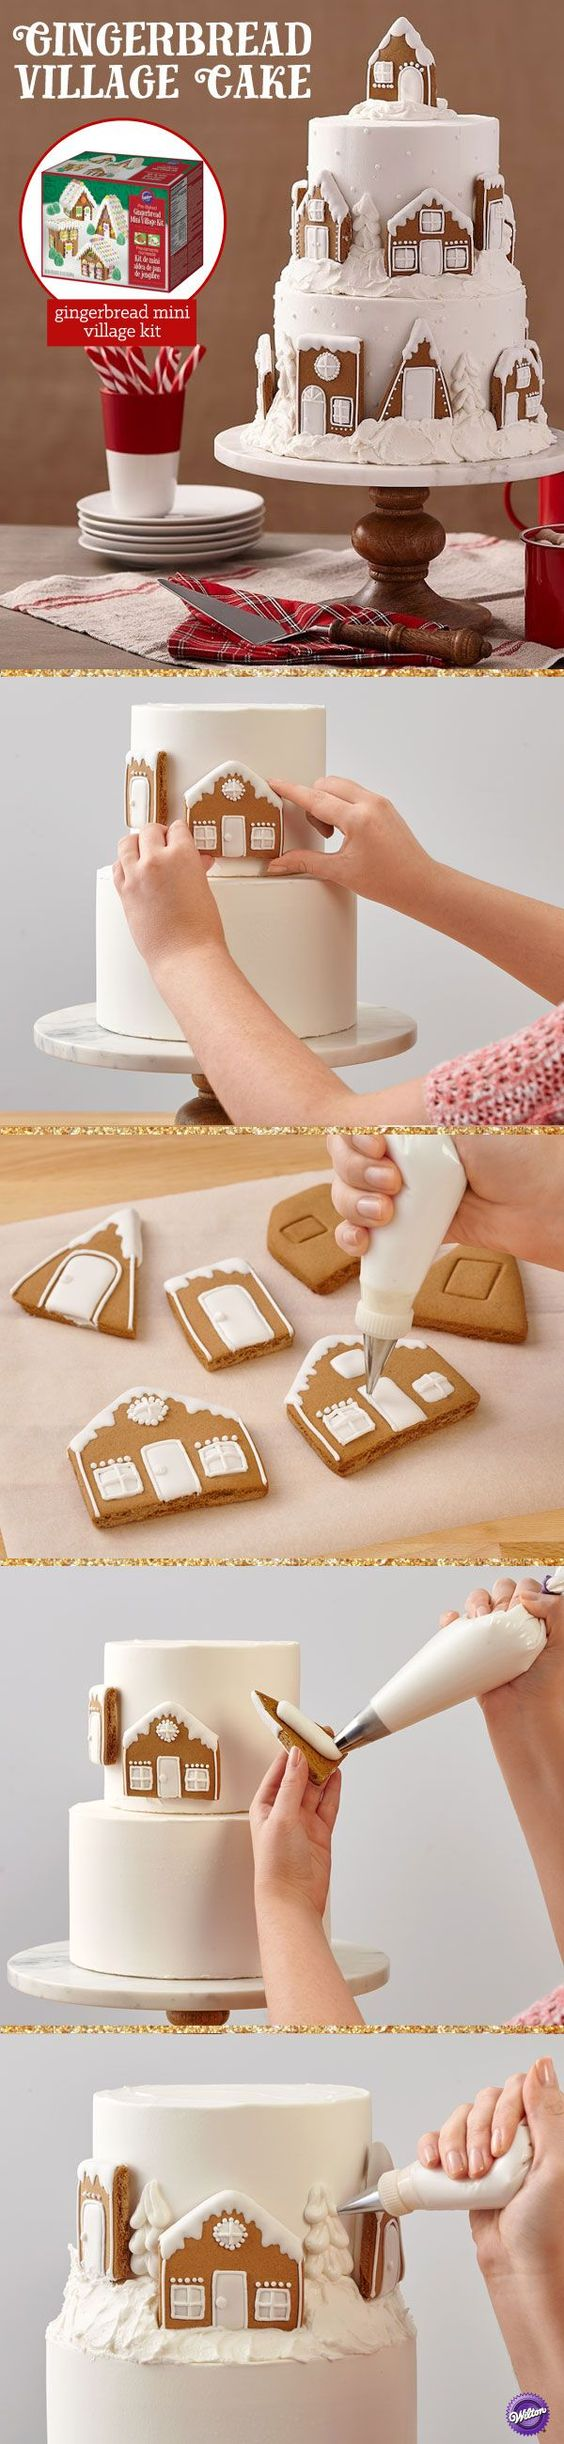 Gingerbread kits are not just for the holidays! Here, the cookies from the Wilton Mini Gingerbread Village become a Winter Wonderland village perched on top of a 2-tier cake billowing with drifts of icing snow.